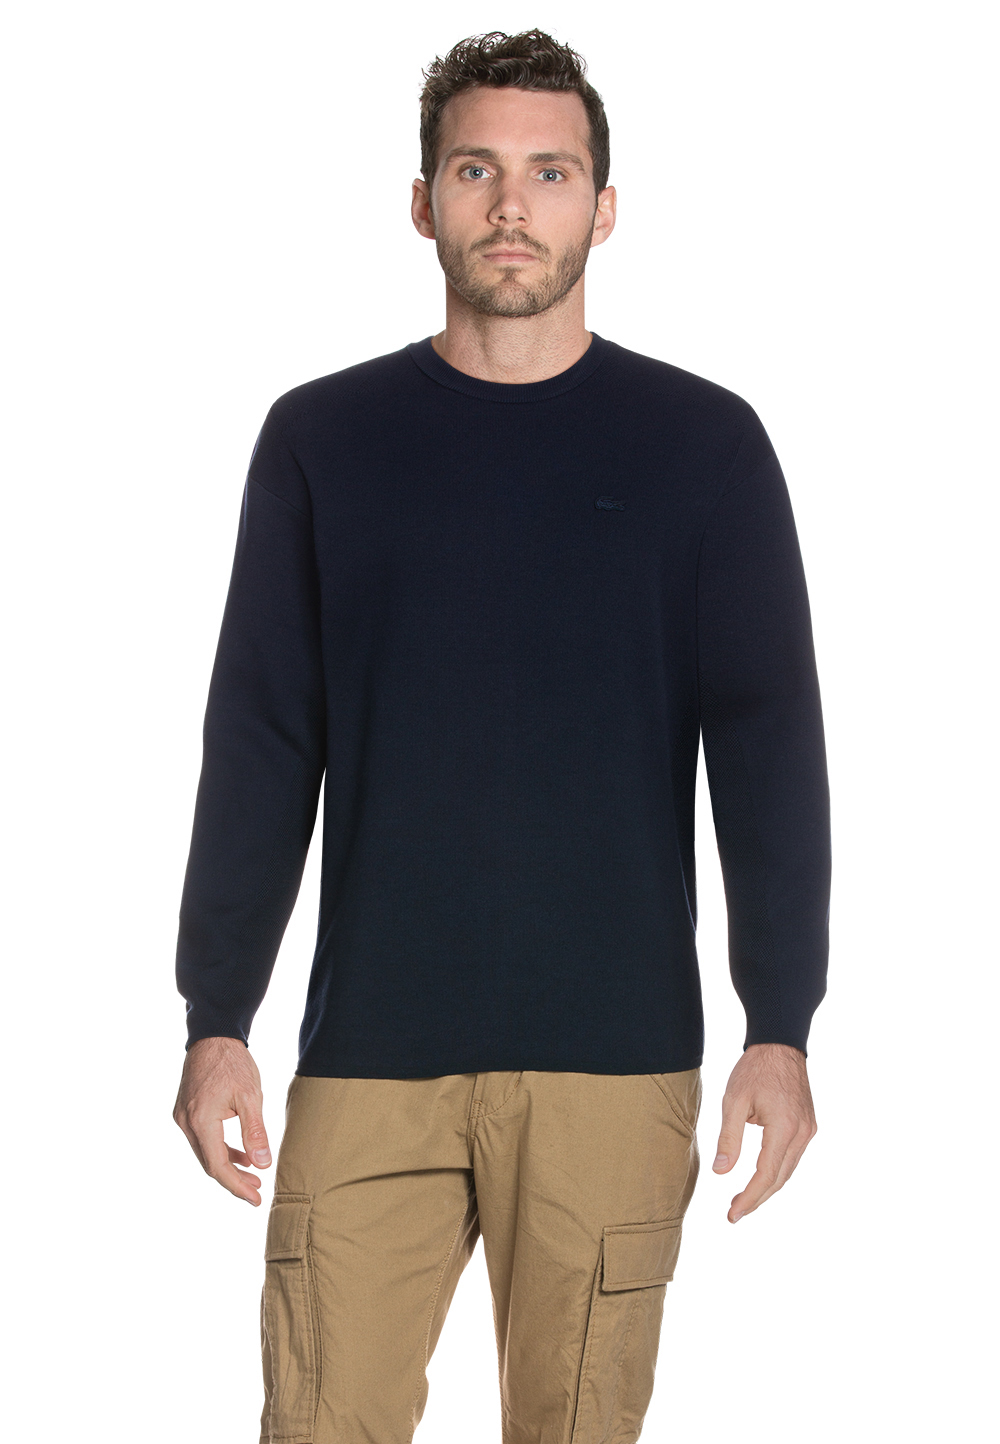 Lacoste Pullover, Rundhals, Regular Fit blau | Bekleidung > Pullover | Lacoste